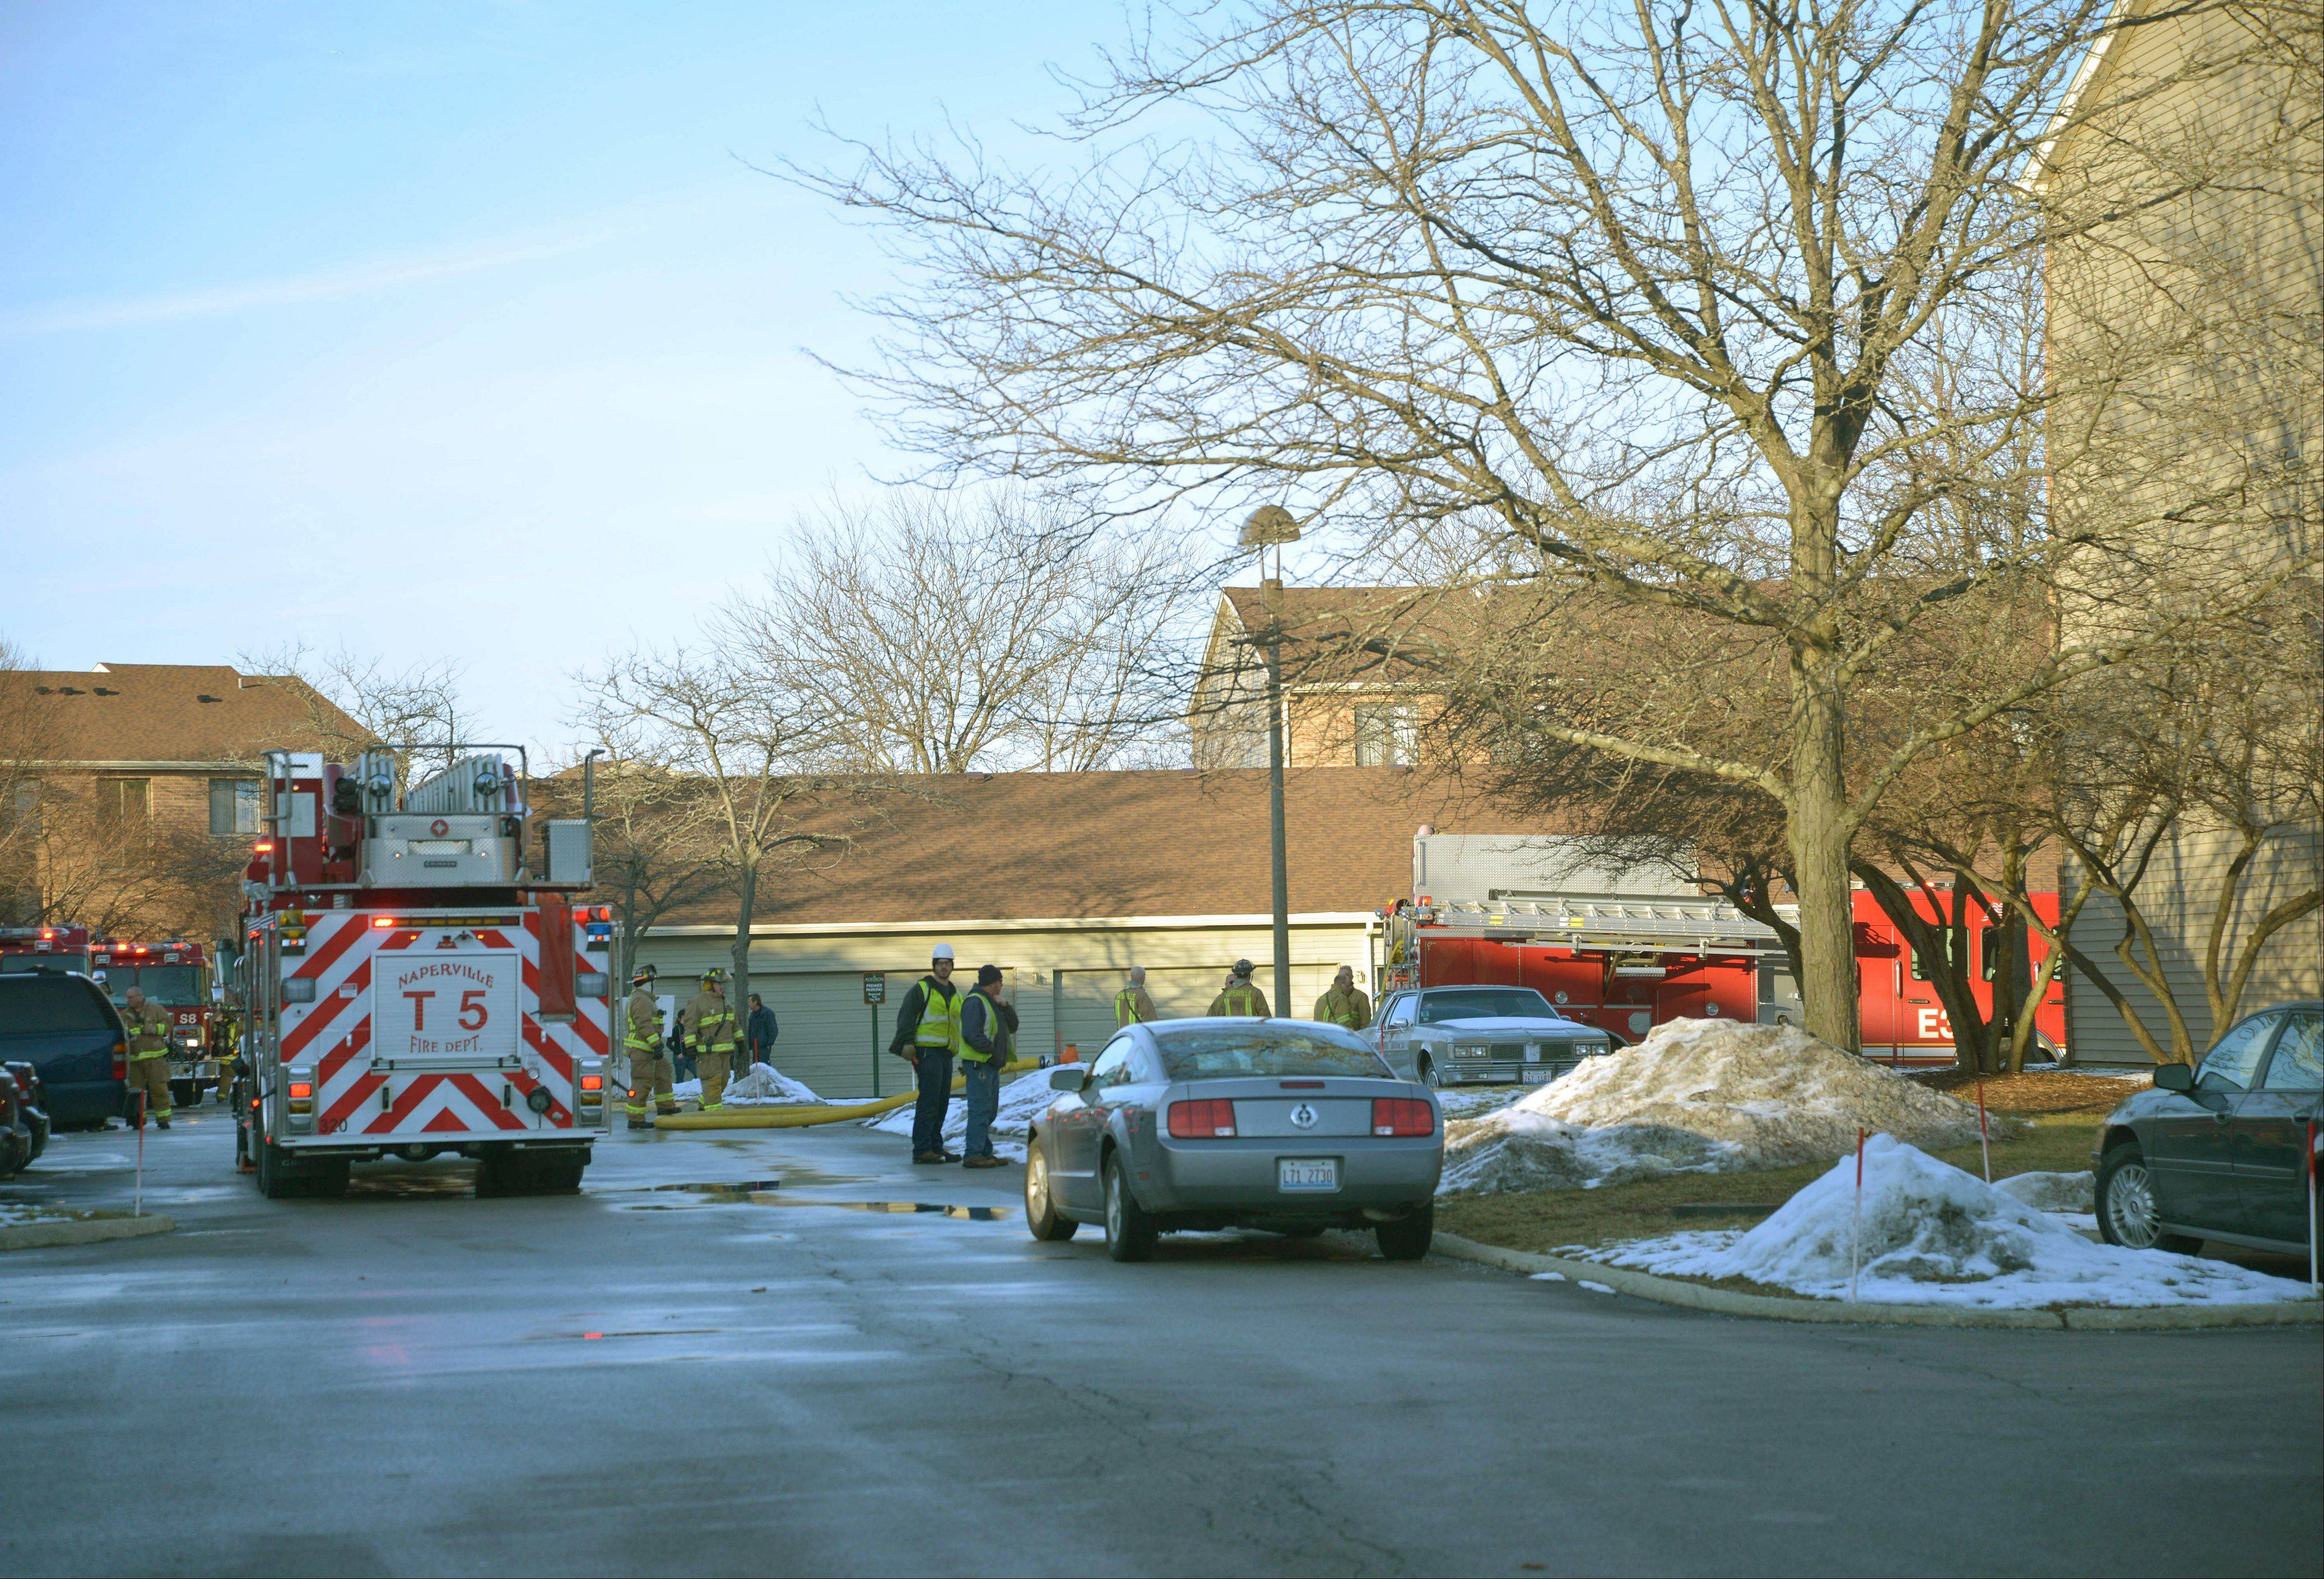 Naperville firefighters battled an apartment fire Friday afternoon on the 1400 block of Fairway Drive.